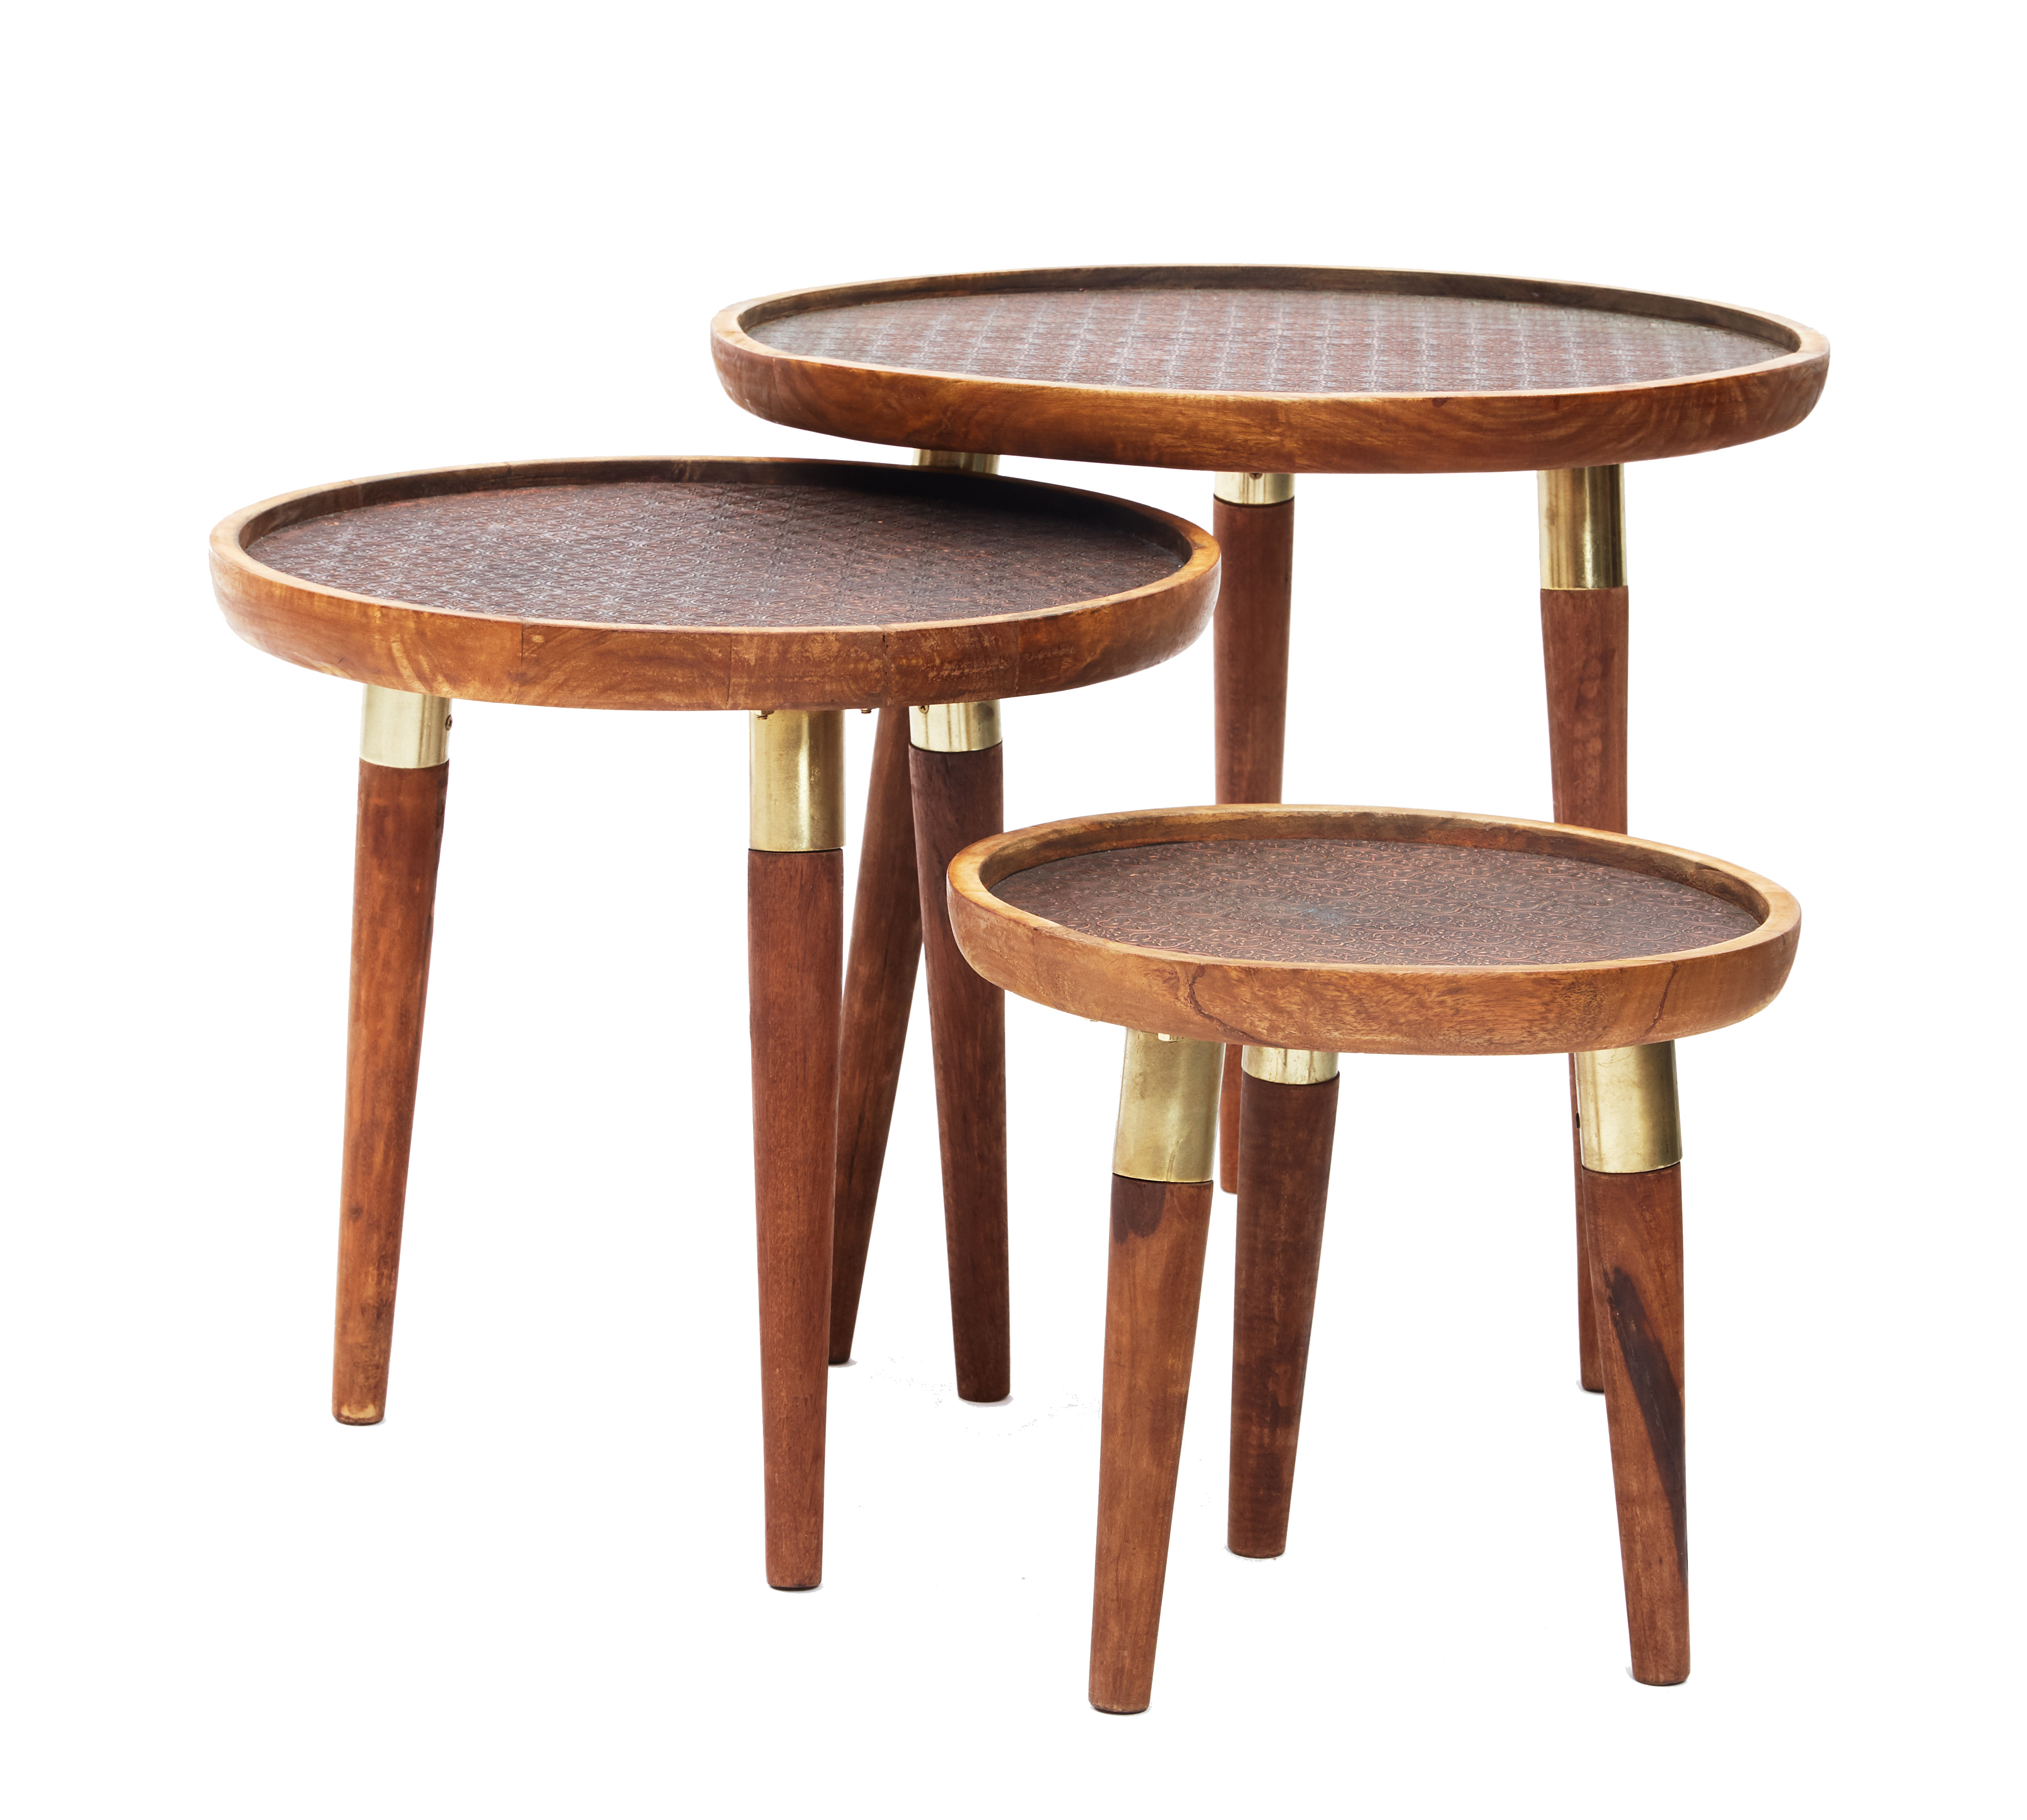 Anchora Nest of Tables